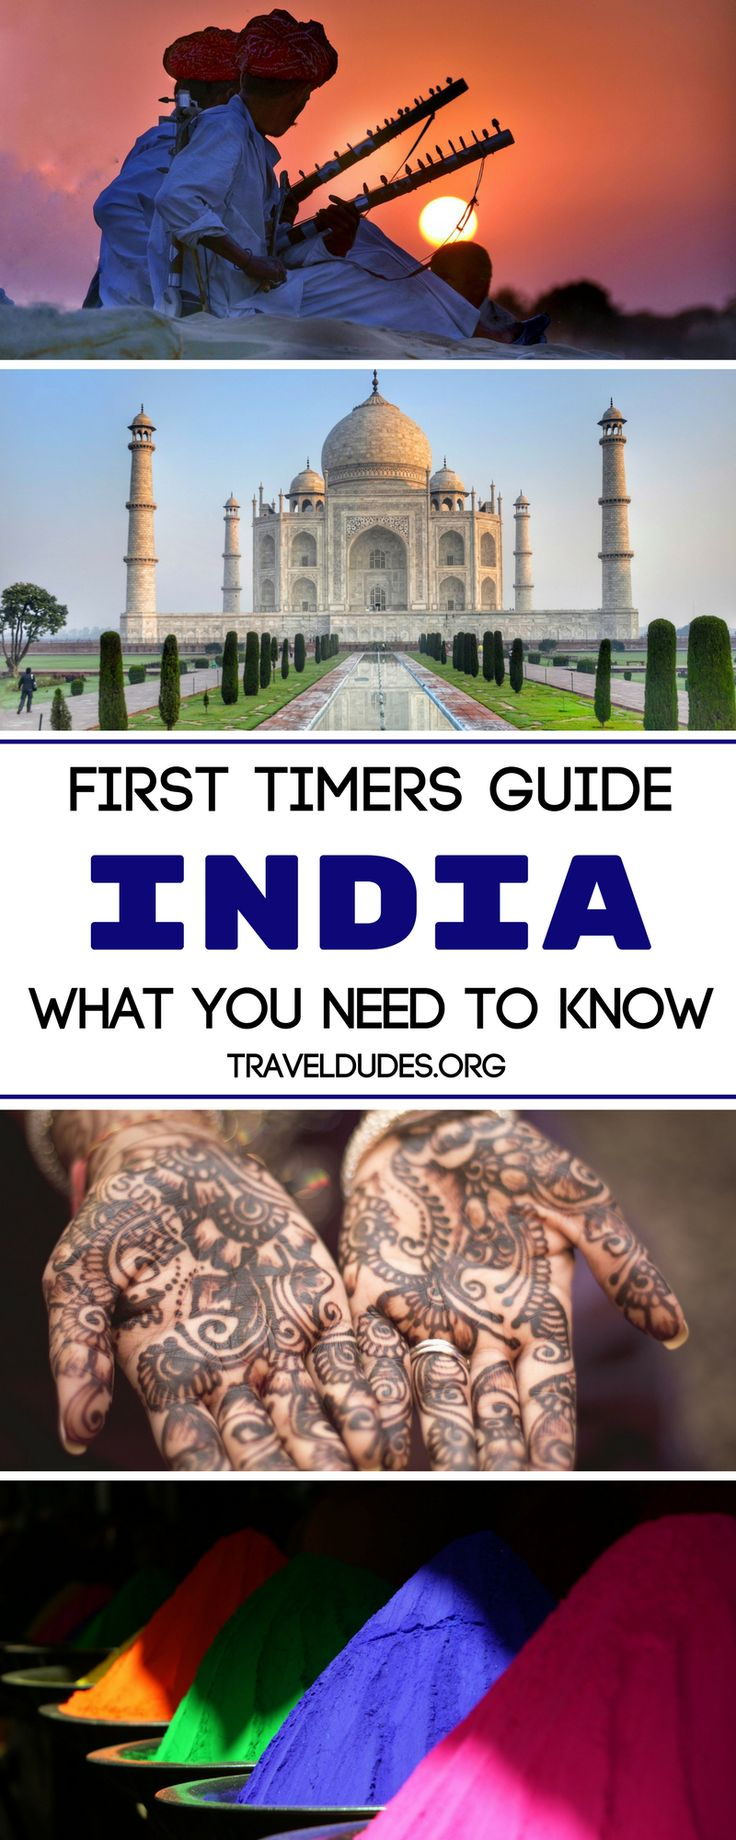 Don't travel to India without looking over these top 10 tips. Learn how to enjoy street food delicacies, keep in mind you're in a different culture, and women, don't forget to dress appropriately when it comes to your fashion choices. Travel in India.   Travel Dudes Travel Community #India